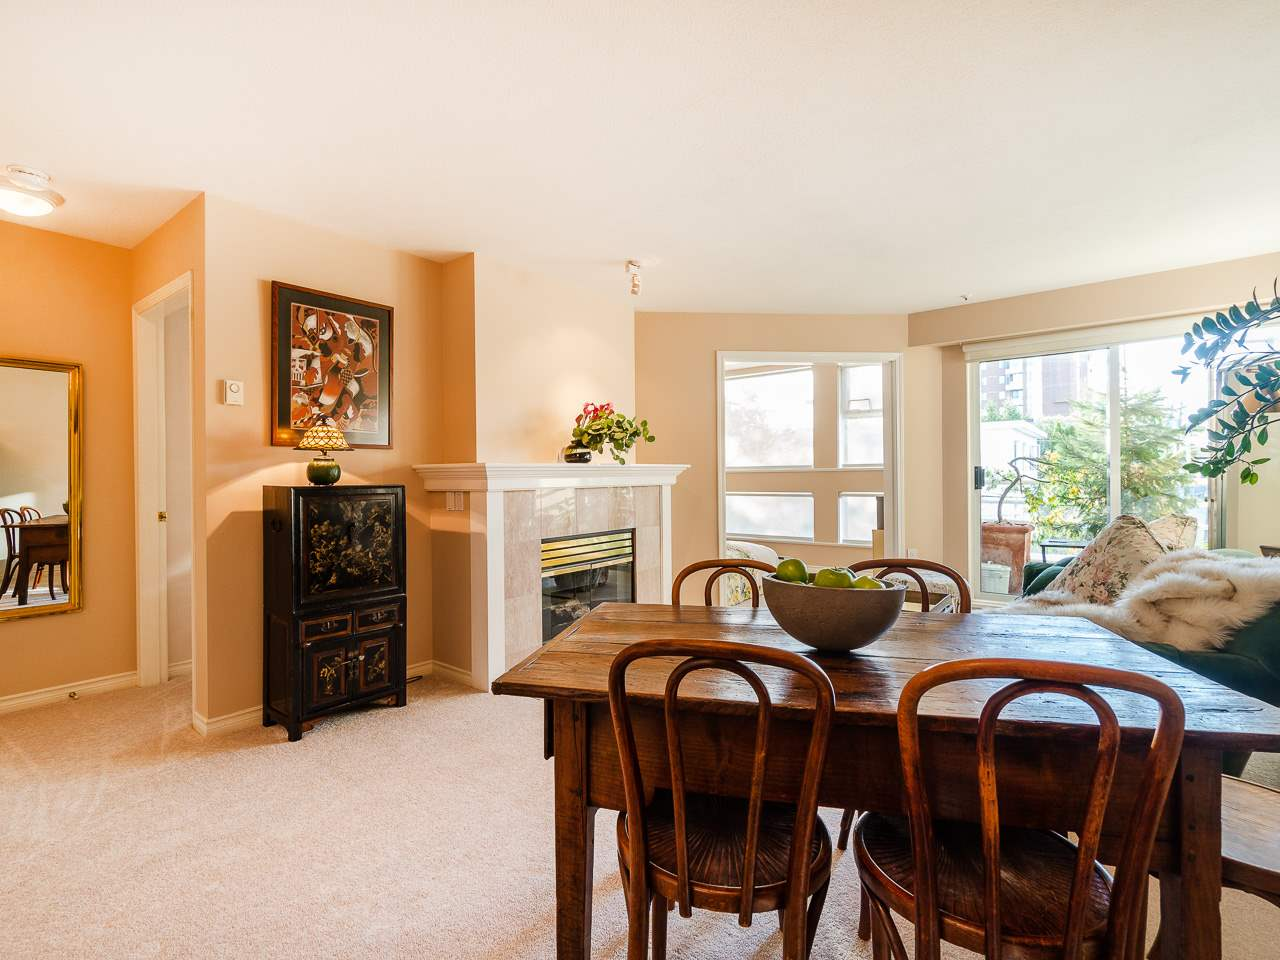 306 2105 W 42ND AVENUE - Kerrisdale Apartment/Condo for sale, 1 Bedroom (R2511504) - #2